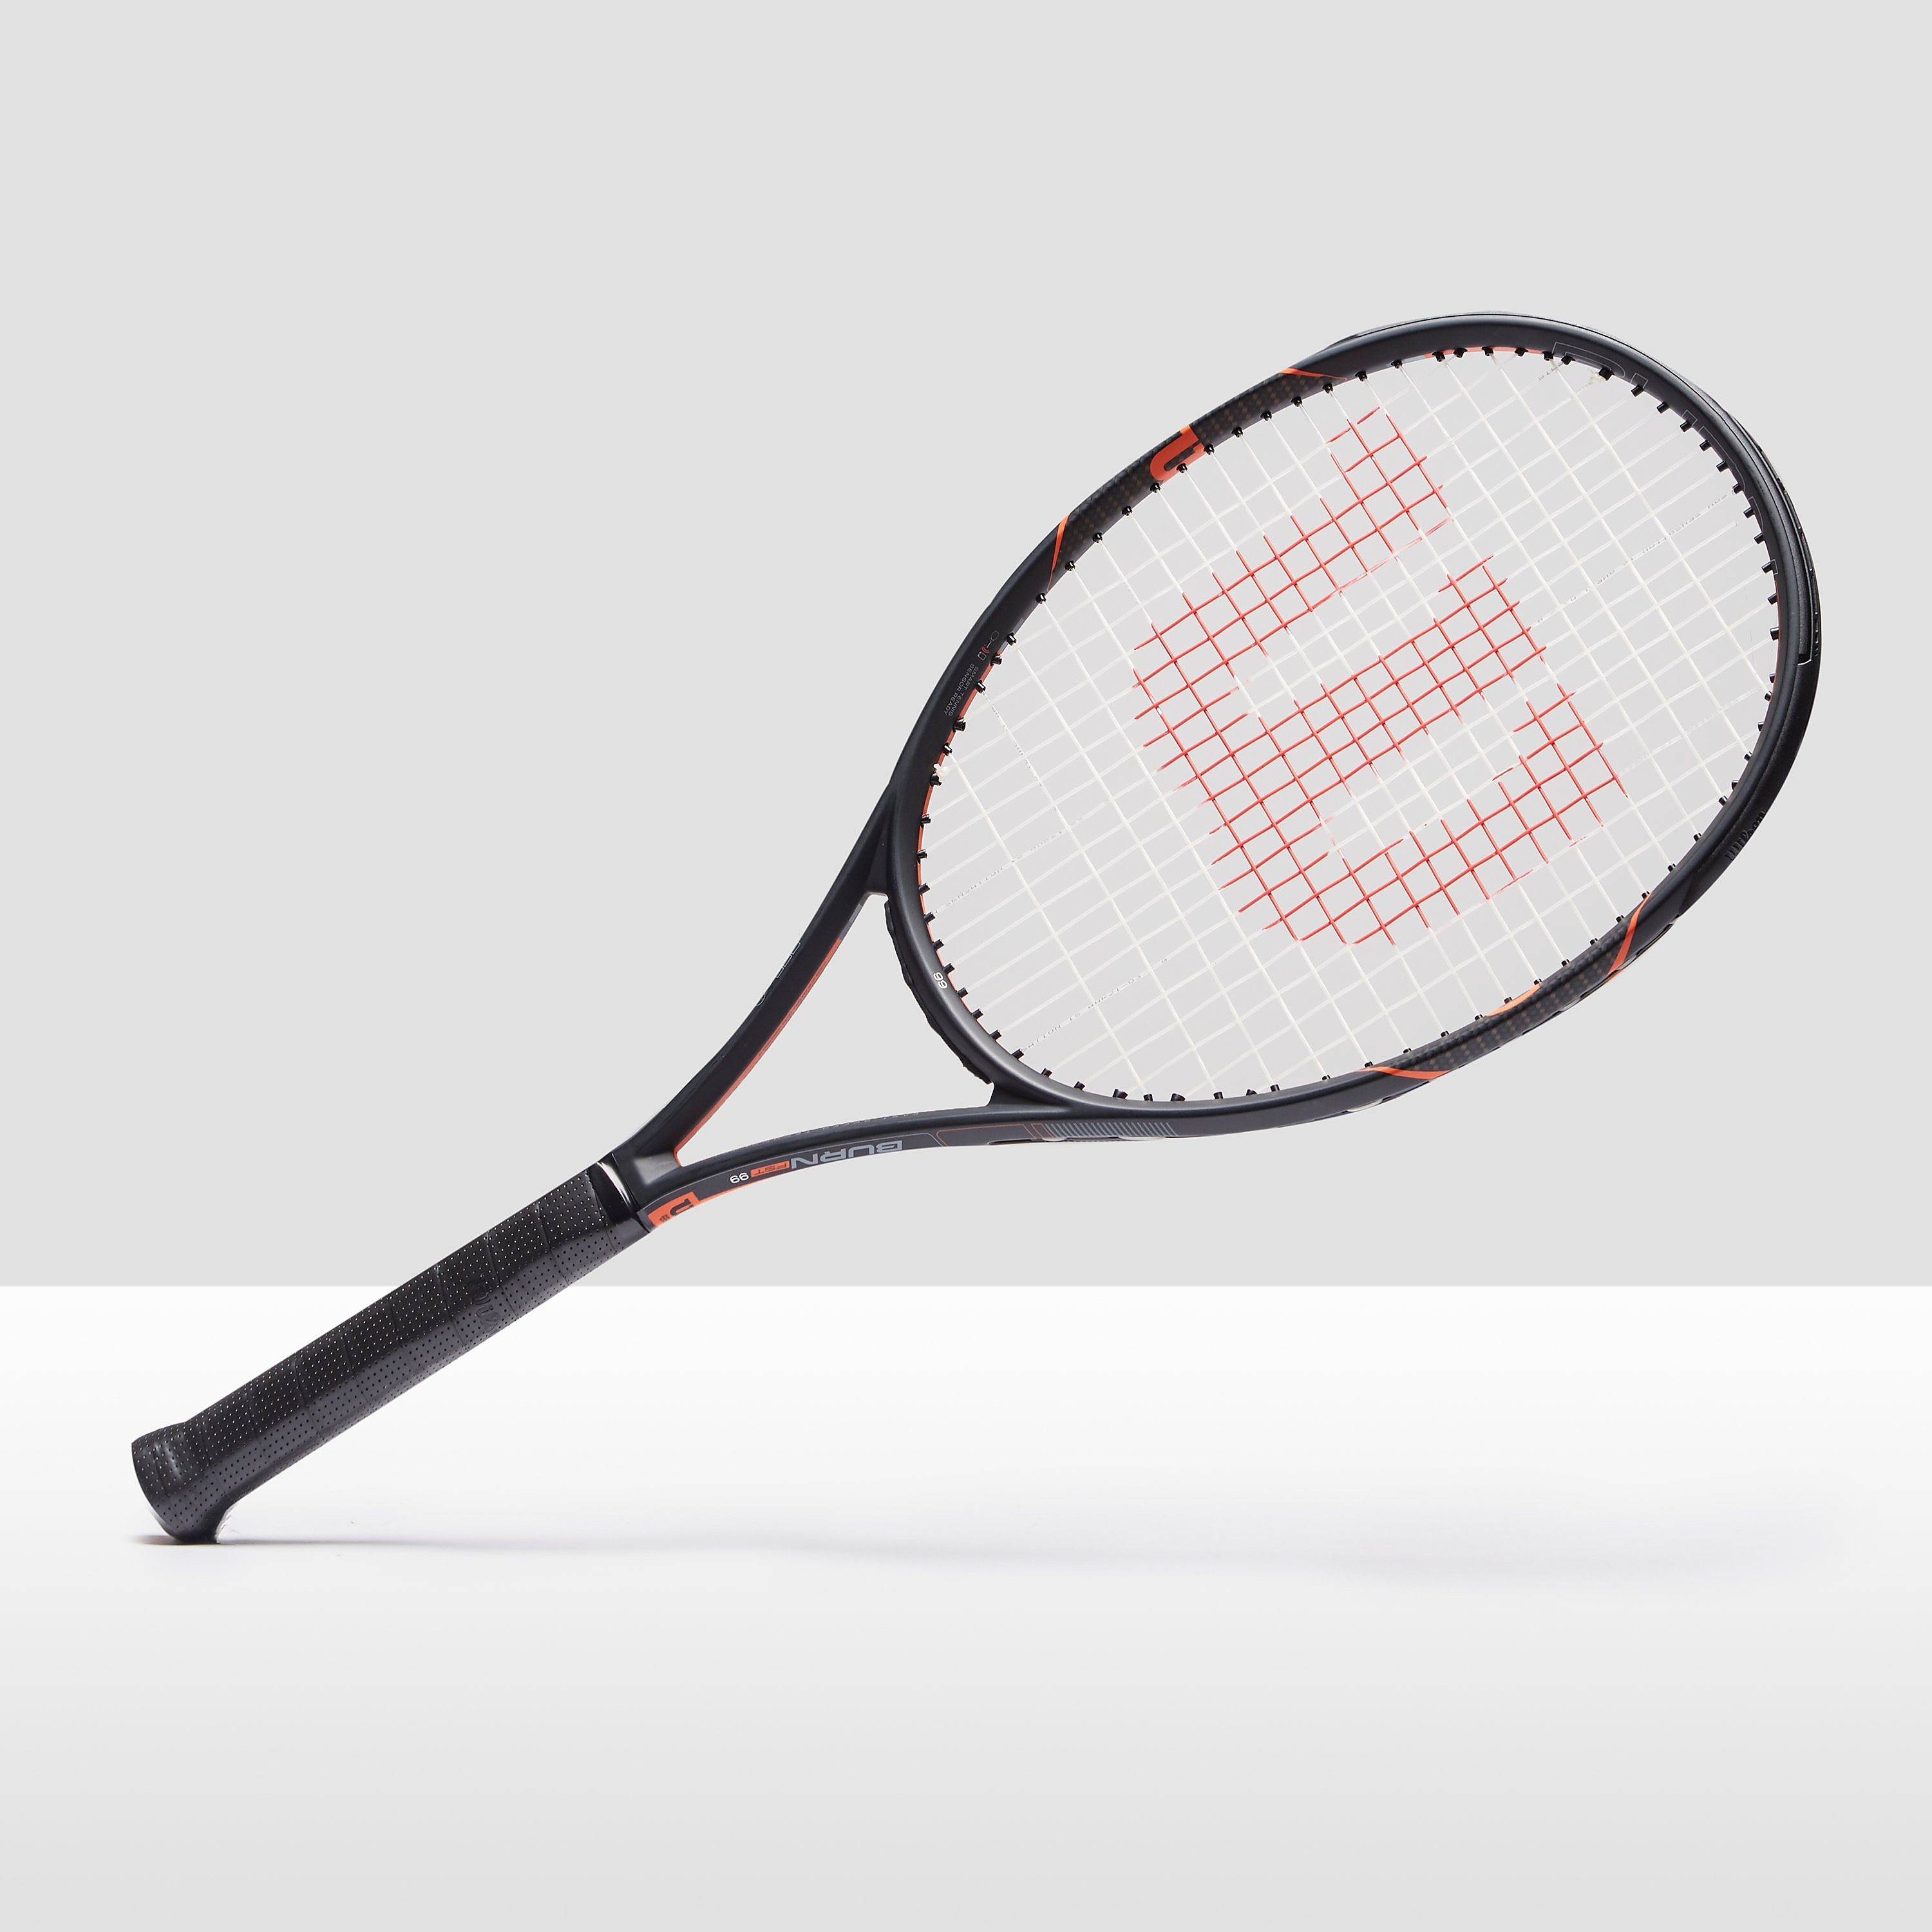 Wilson Burn FST 99 Tennis Racket